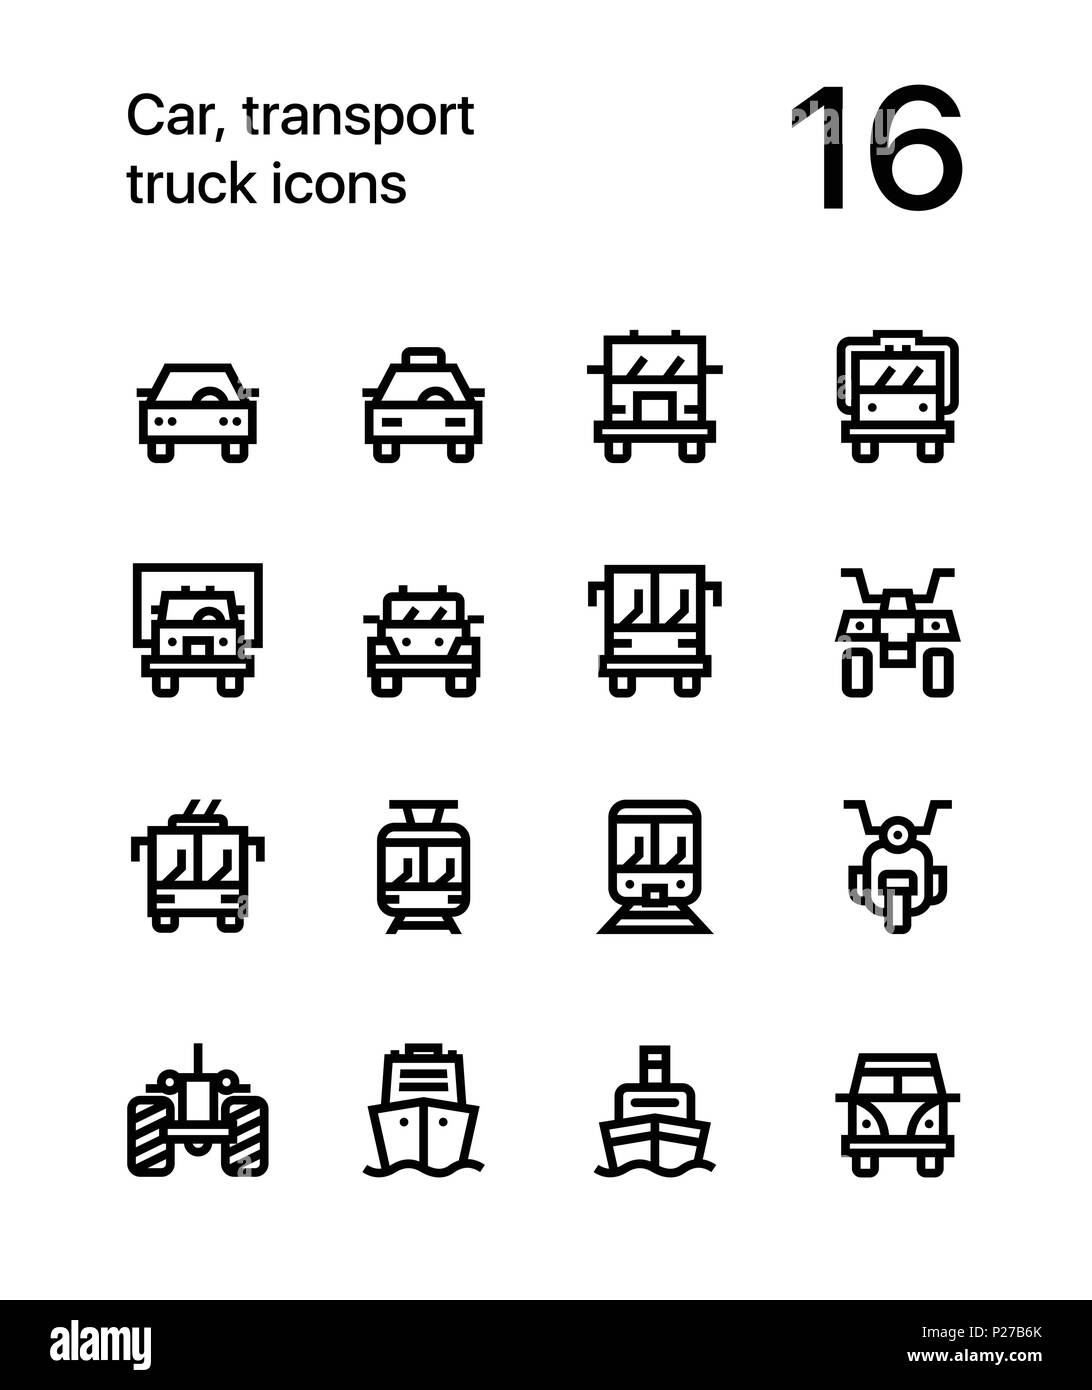 Car, transport, vehicle, truck, train vector flat line icons for web and mobile applications - Stock Image